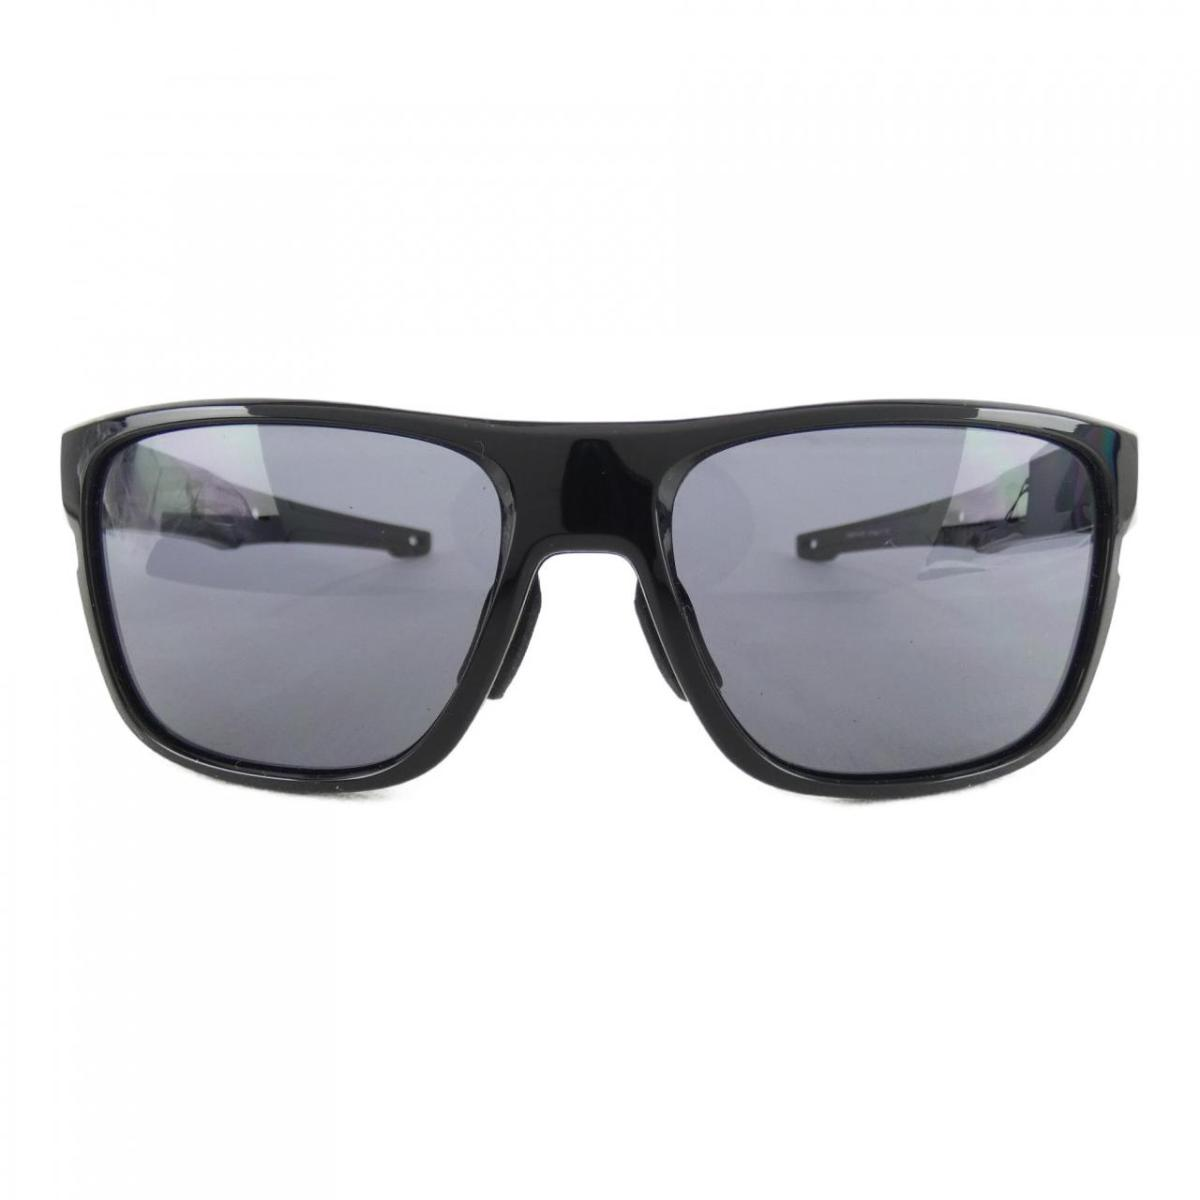 オークリー OAKLEY SUNGLASSES CROSS RANGE【中古】